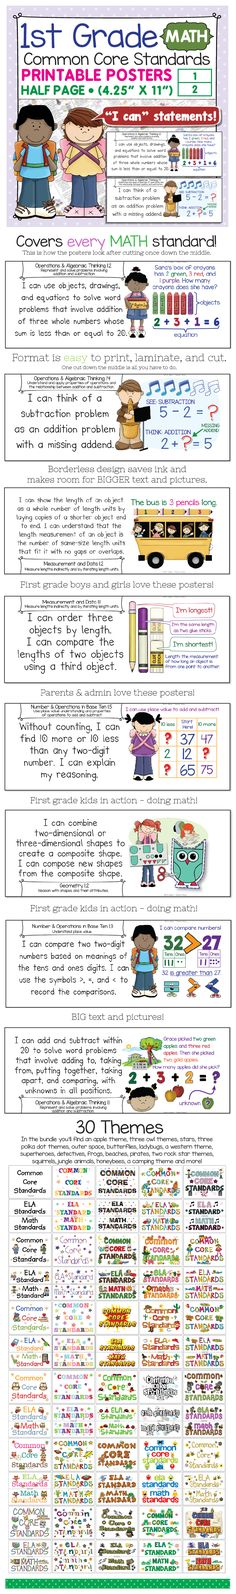 Easy-to-use printable posters for first grade math! New design that gets the most out of your limited wall space and printer ink! Big text and pictures of first grade kids doing first grade math. I had a lot of fun making these. Thanks for looking!  -Steve